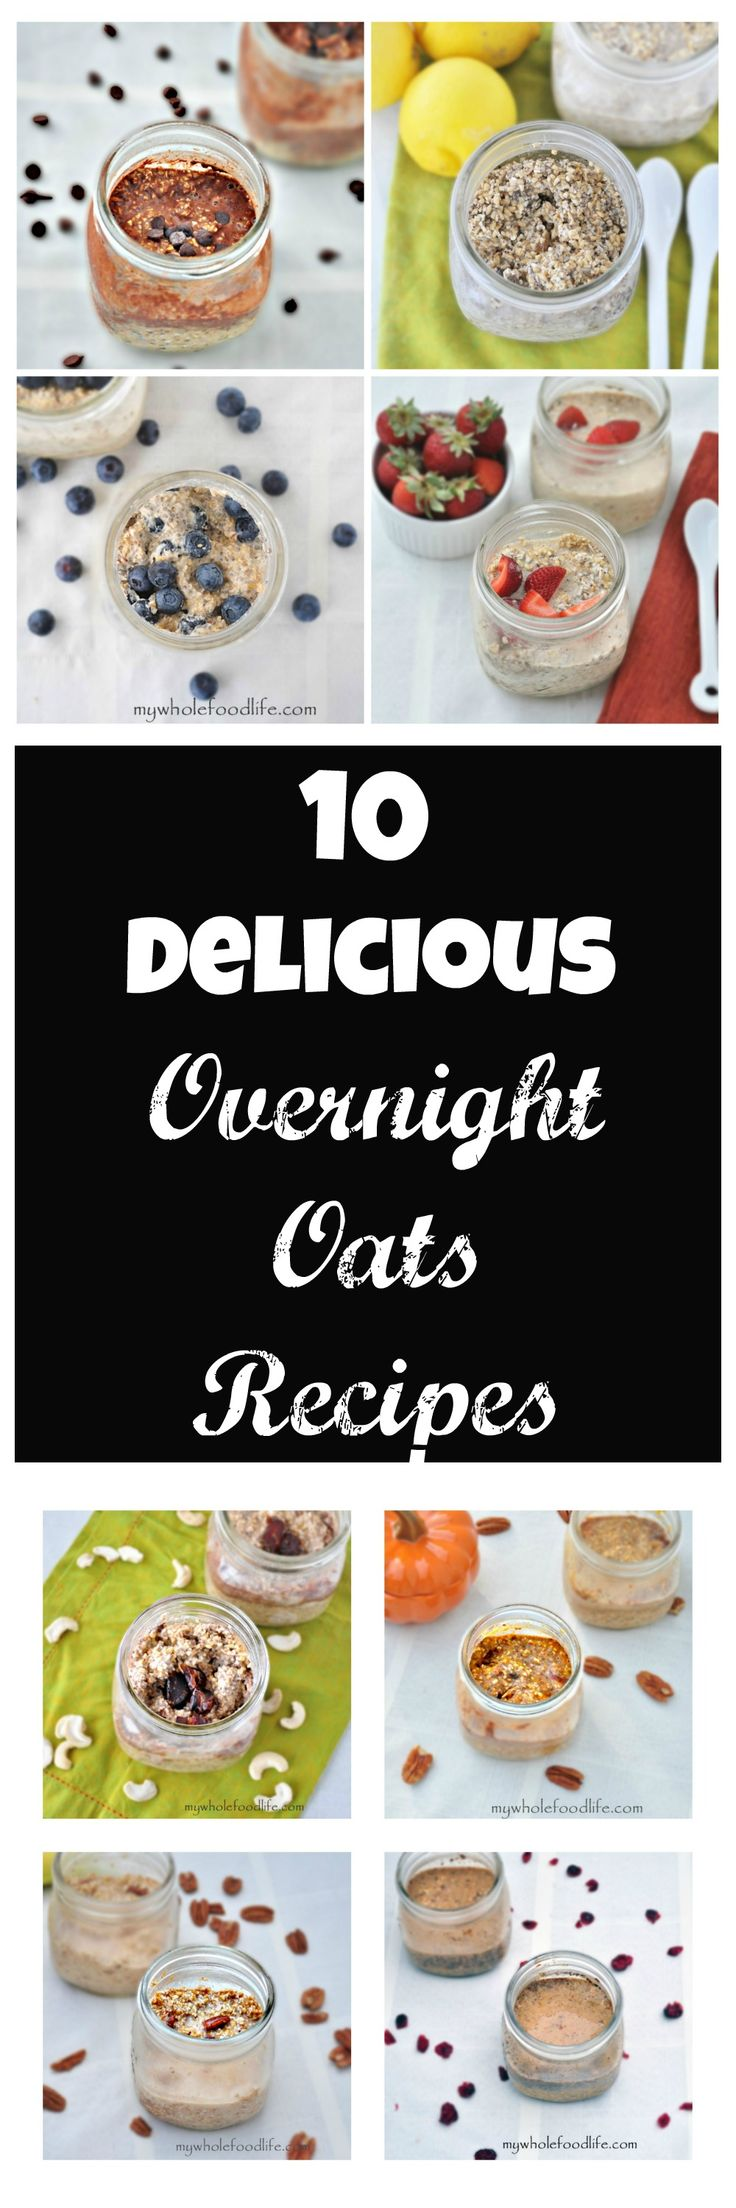 10 Delicious Overnight Oats Recipes! - My Whole Food Life